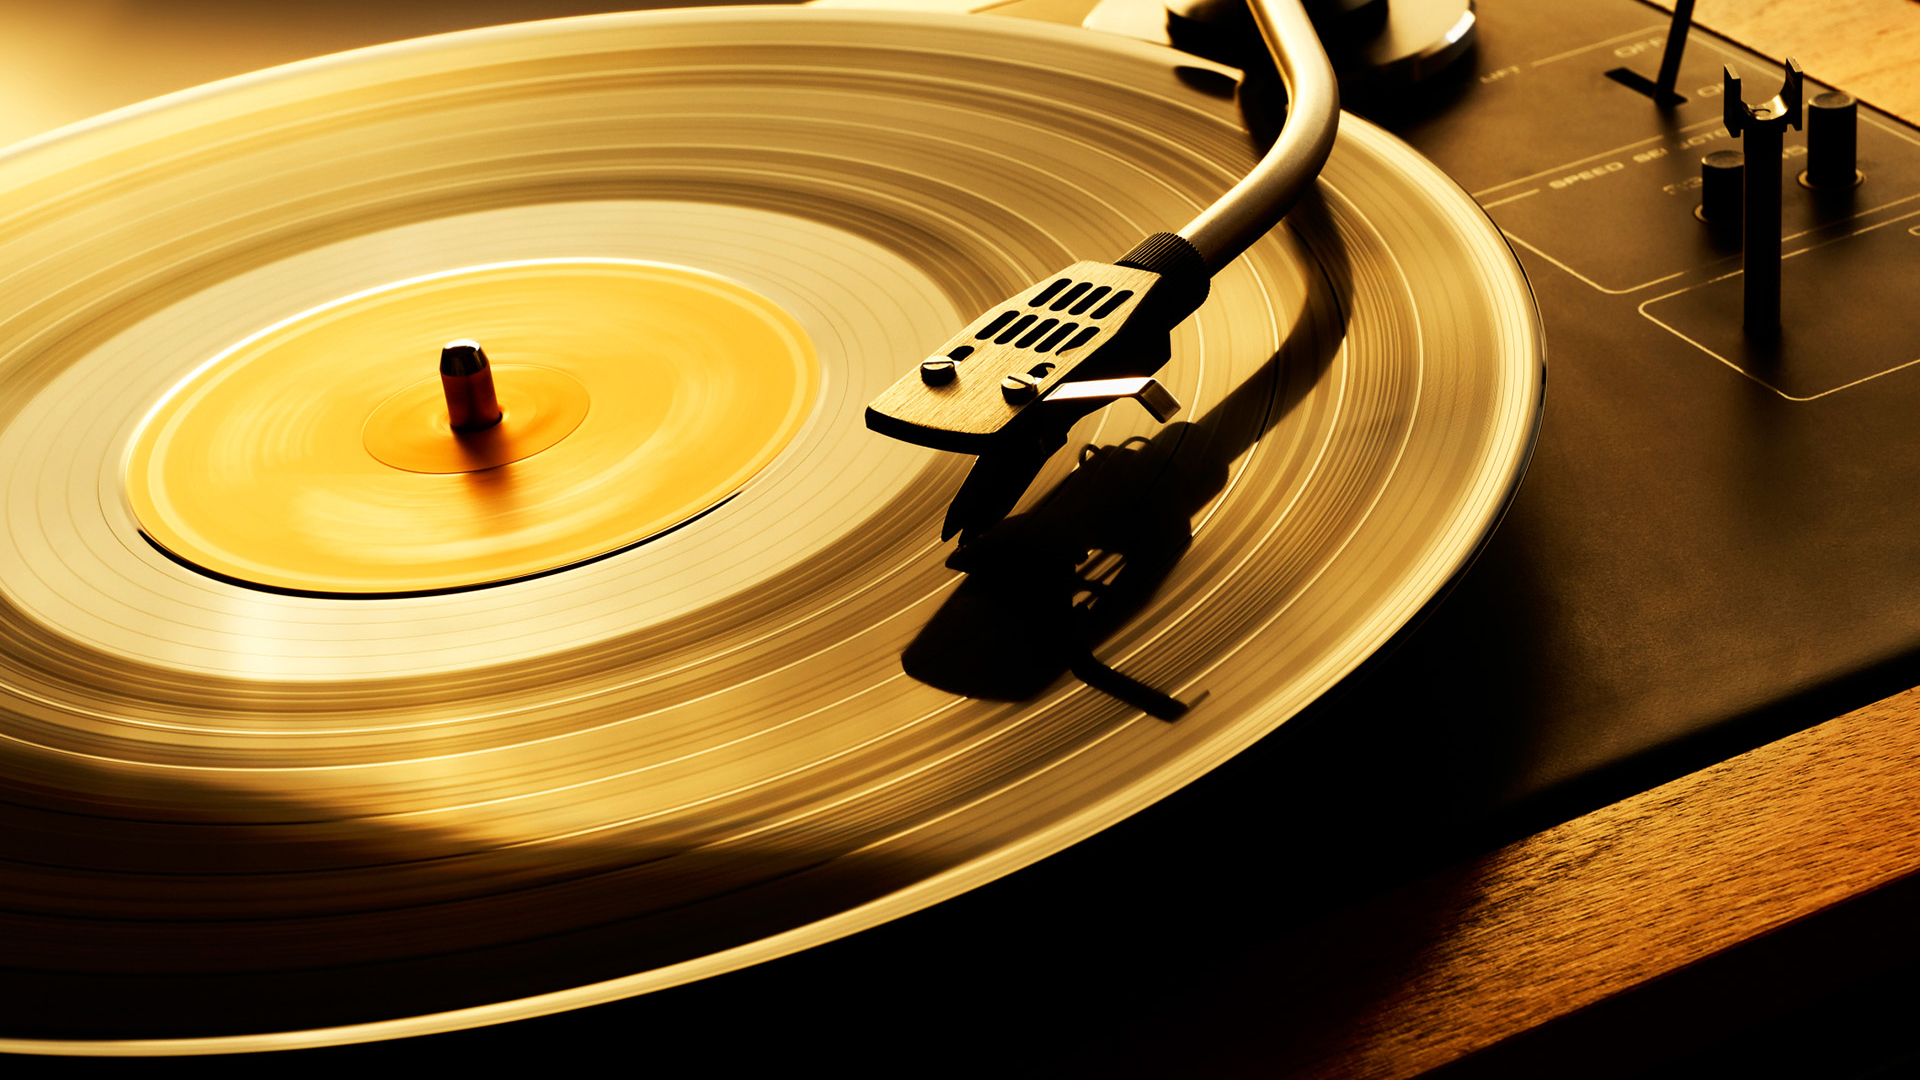 Vinyl Record Wallpapers Hd Wallpapers